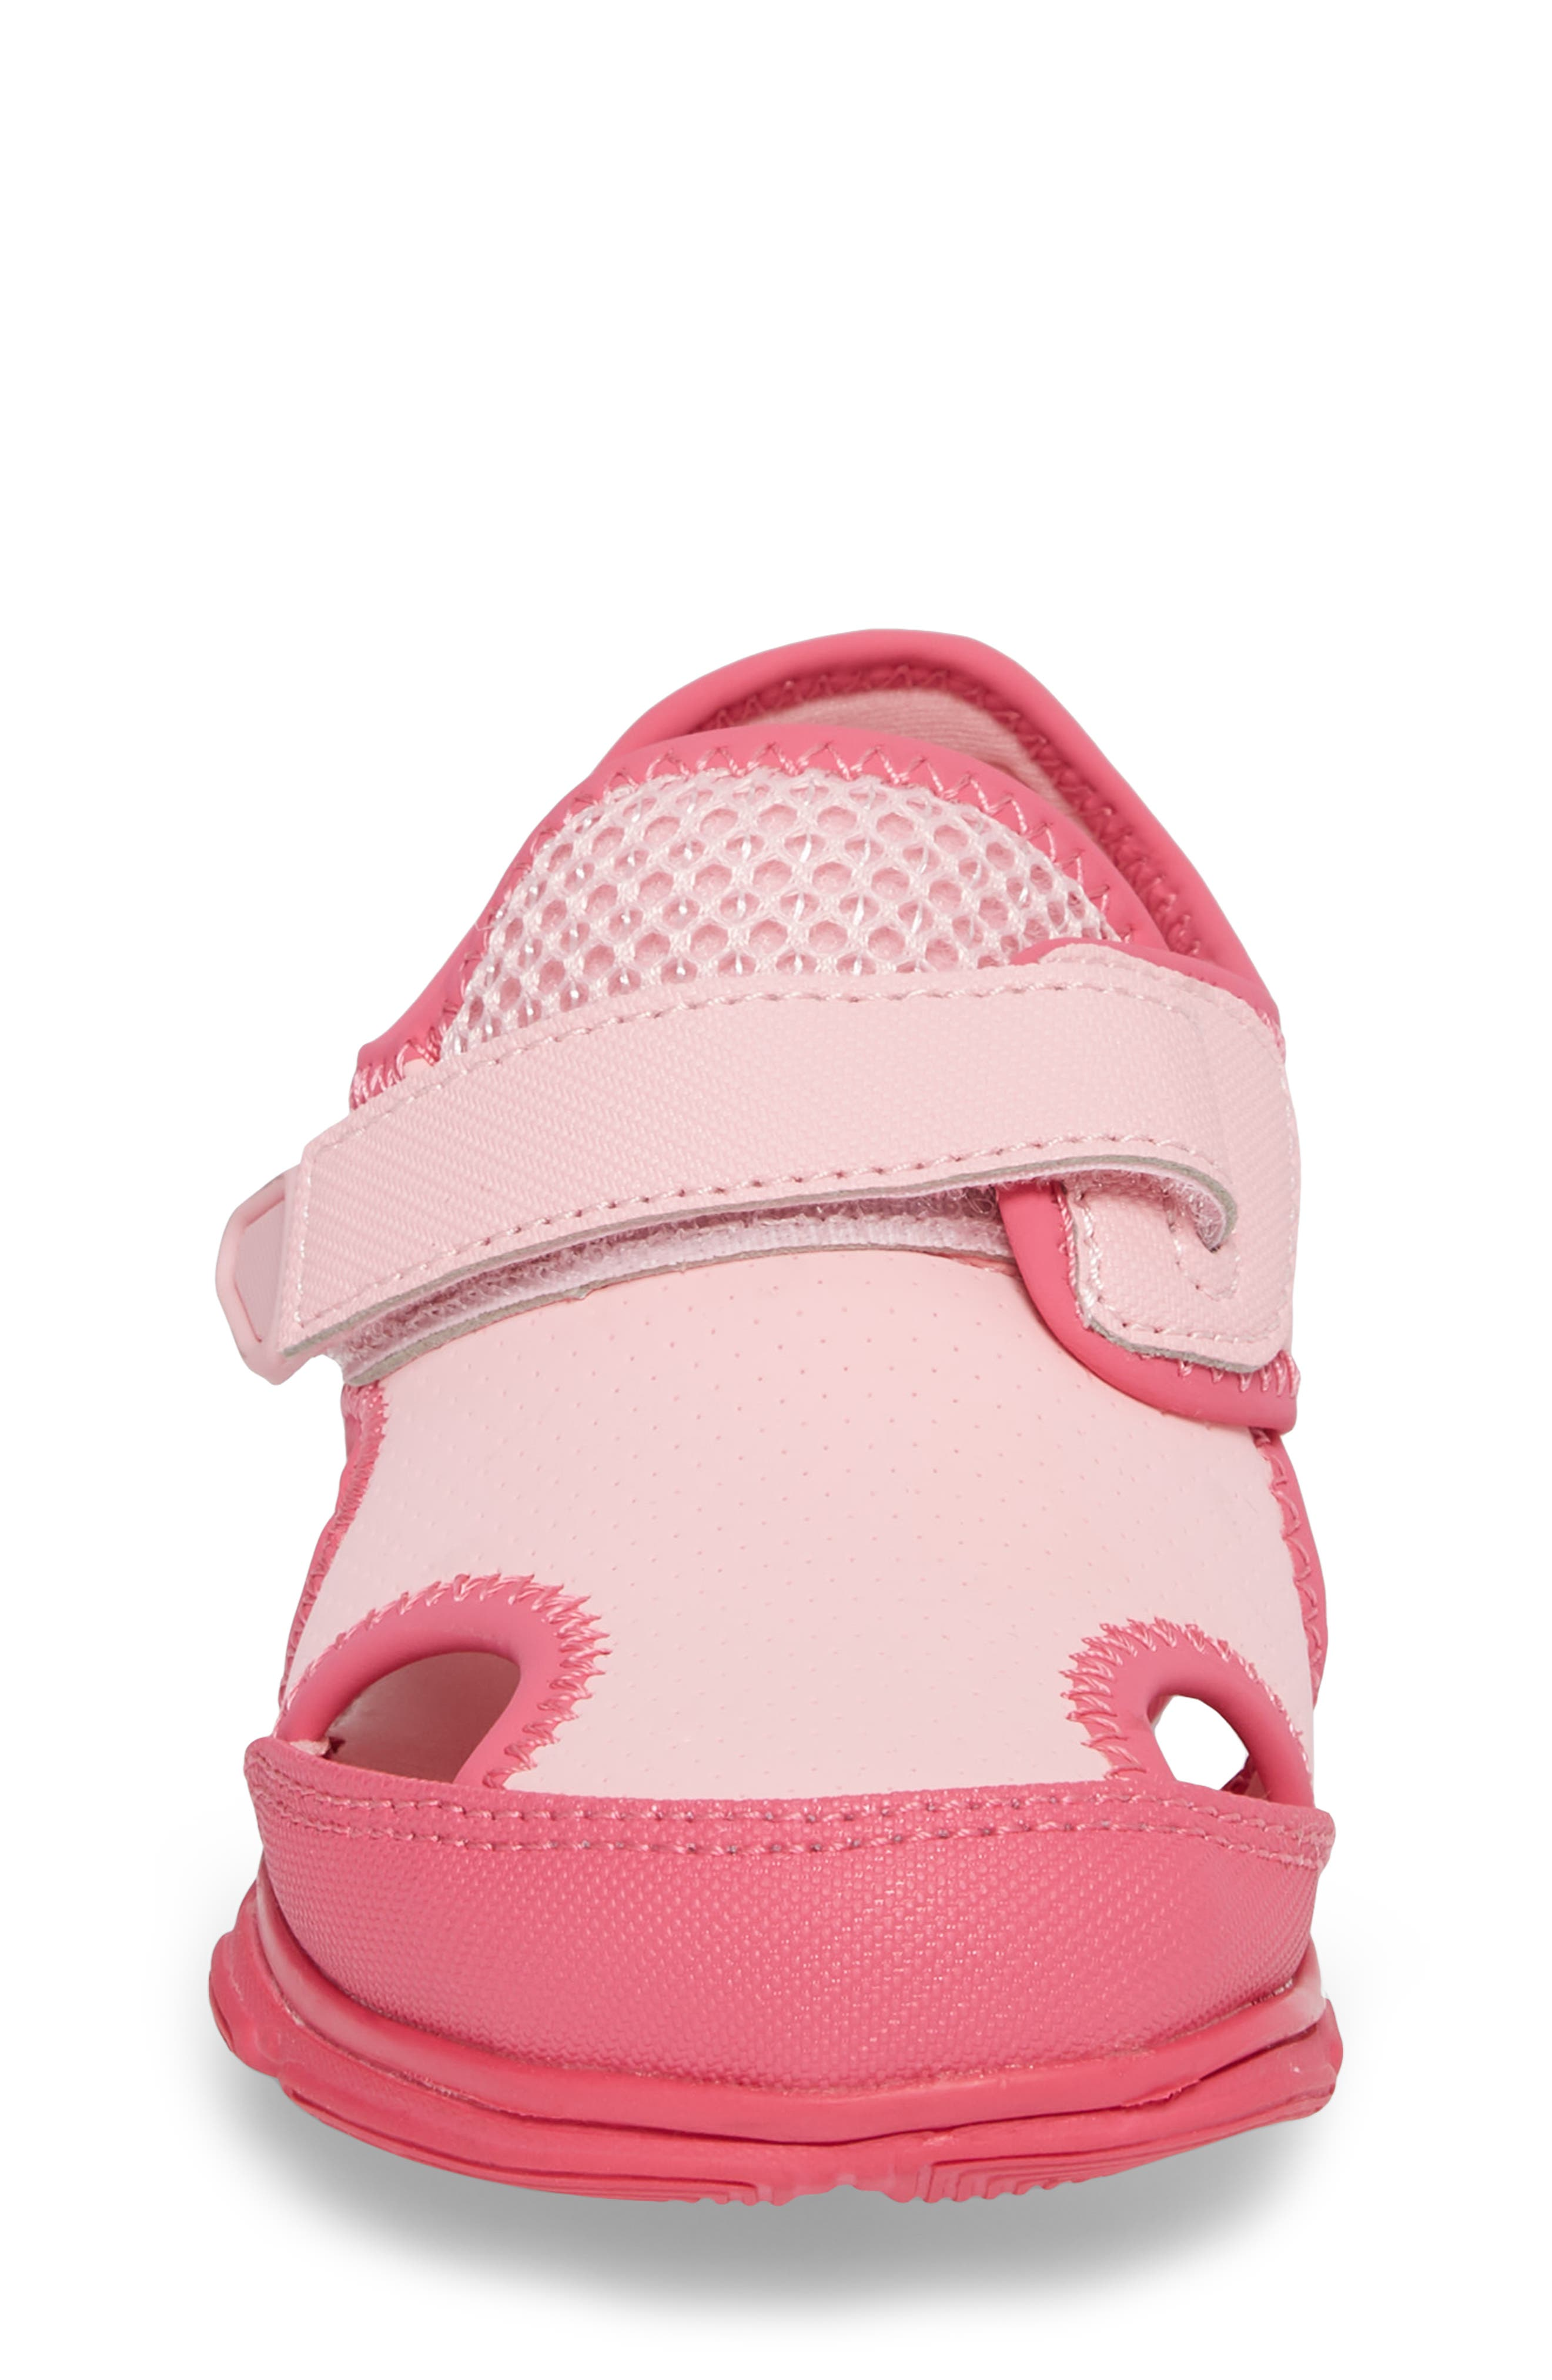 Sophie Water Sandal,                             Alternate thumbnail 4, color,                             Pink/ Dark Pink